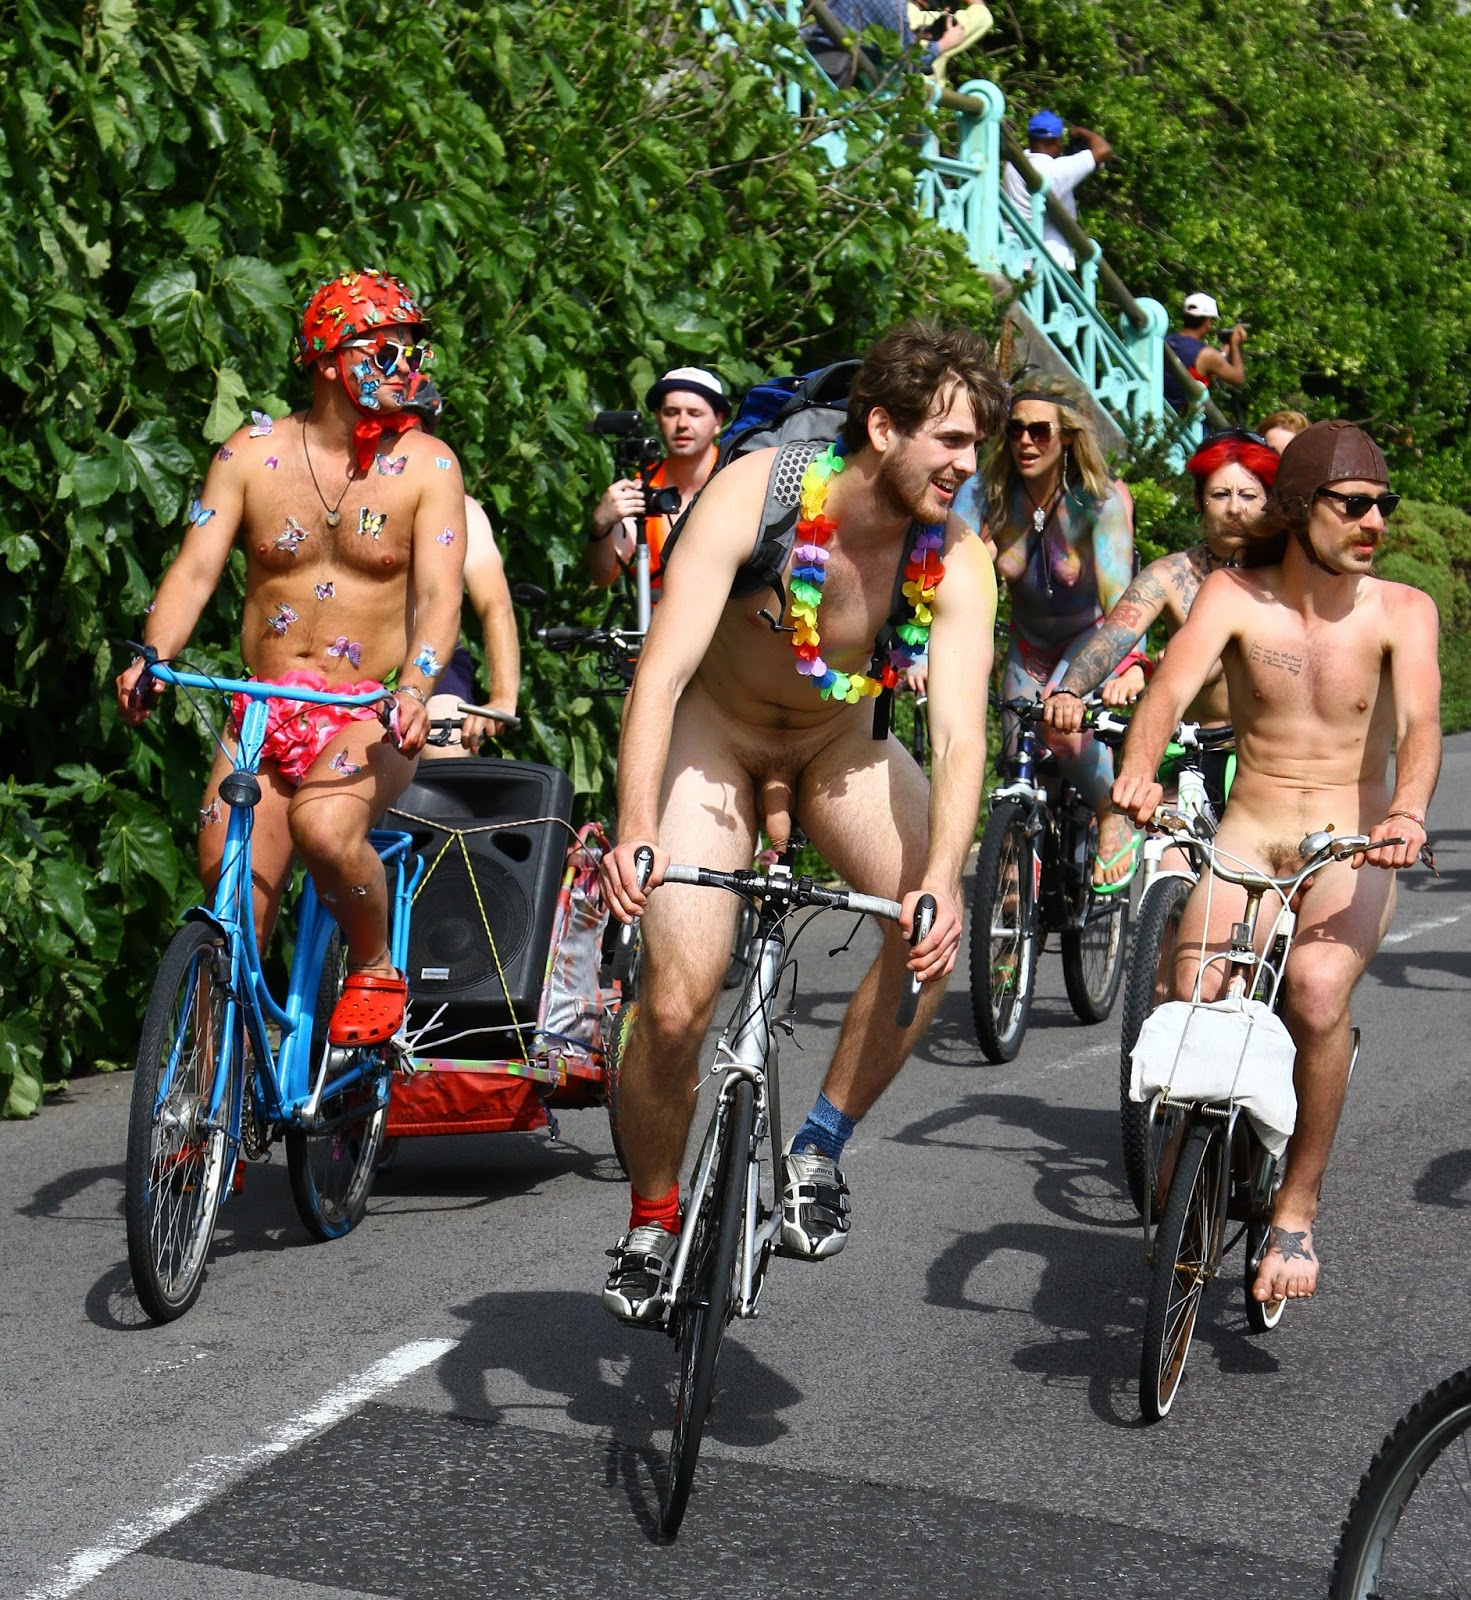 Naked bike ride stock photos and royalty